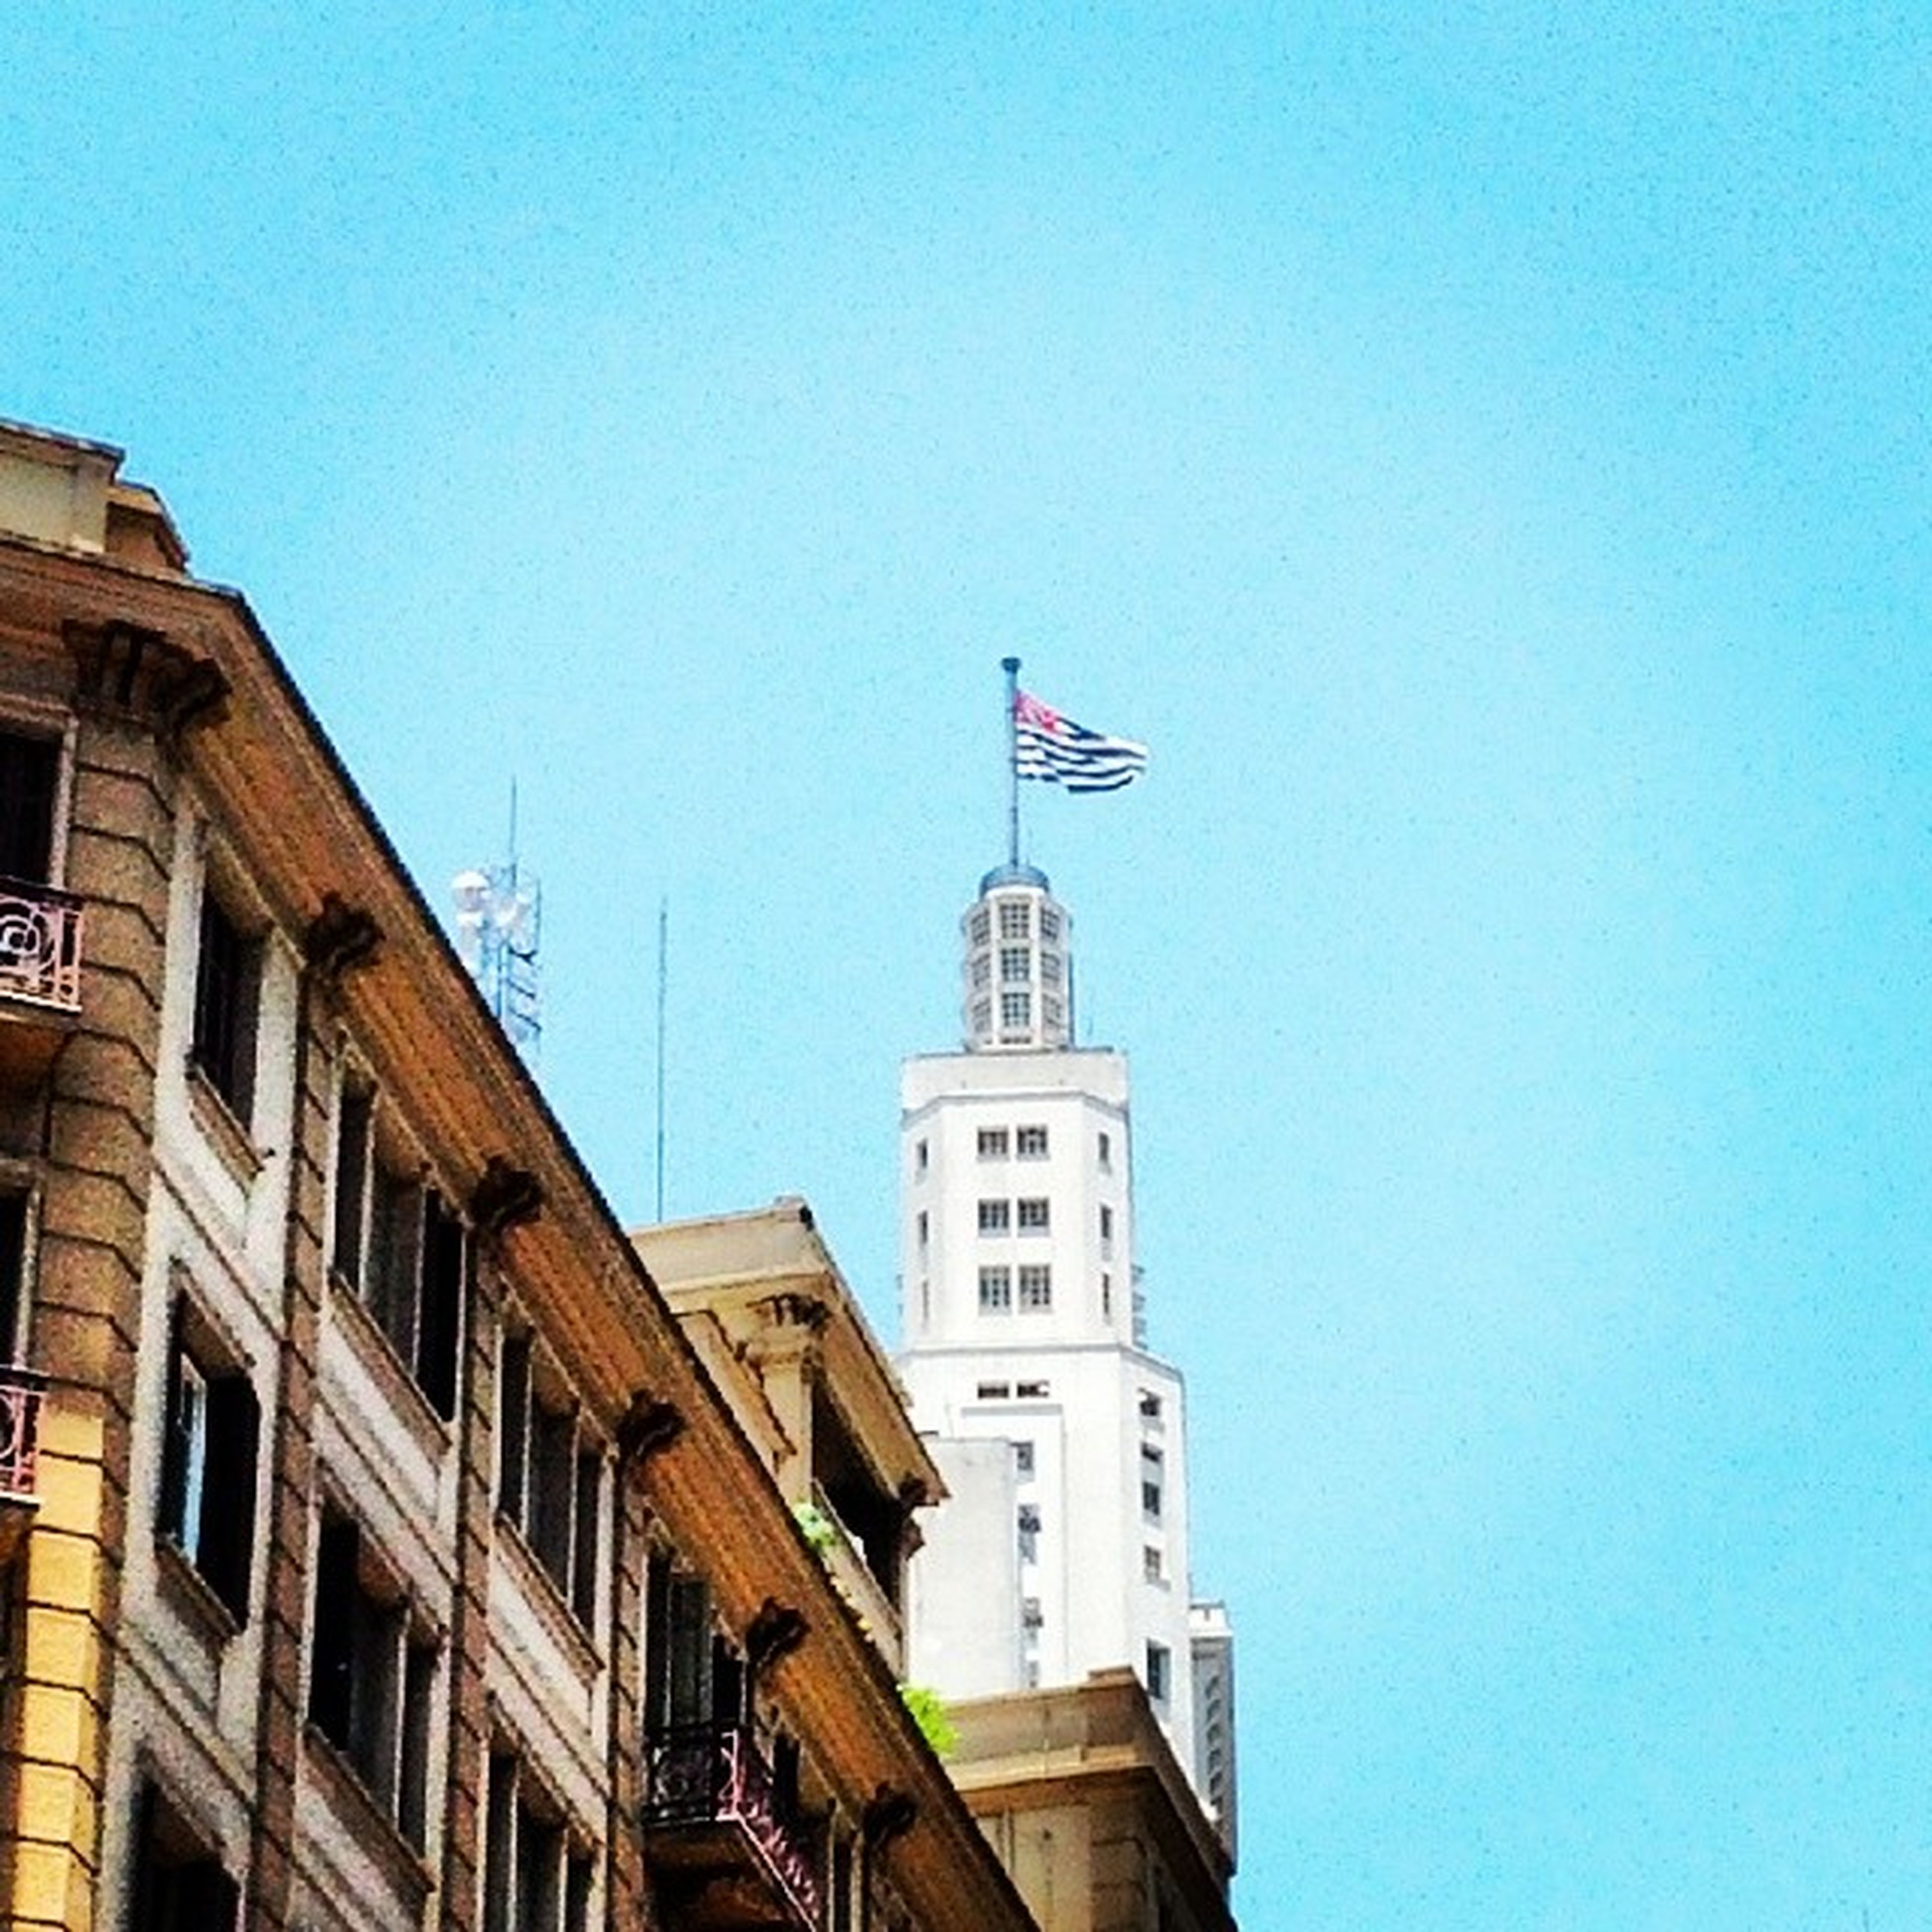 building exterior, architecture, built structure, clear sky, low angle view, copy space, blue, flag, city, religion, tower, patriotism, national flag, day, identity, clock tower, high section, outdoors, no people